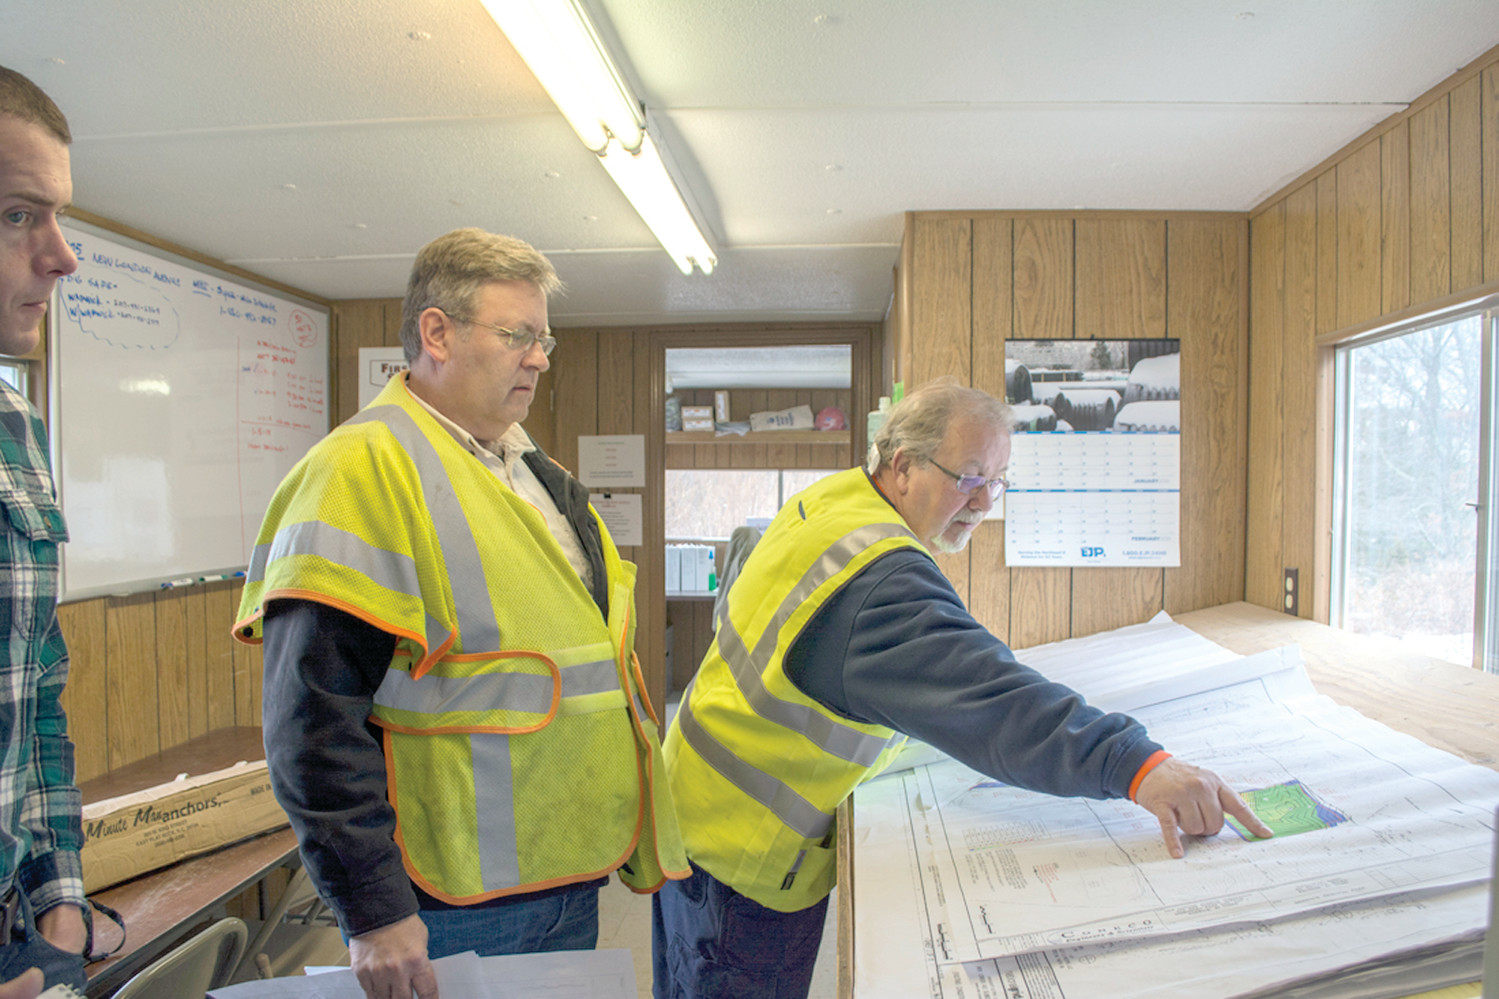 IT'S ALL IN THE PLAN: Daniel McIntyre, principal civil engineer for National Grid and Gary Boyle, site safety officer for Manafort Construction outline construction plans for the electrical substation being built off New London Avenue.